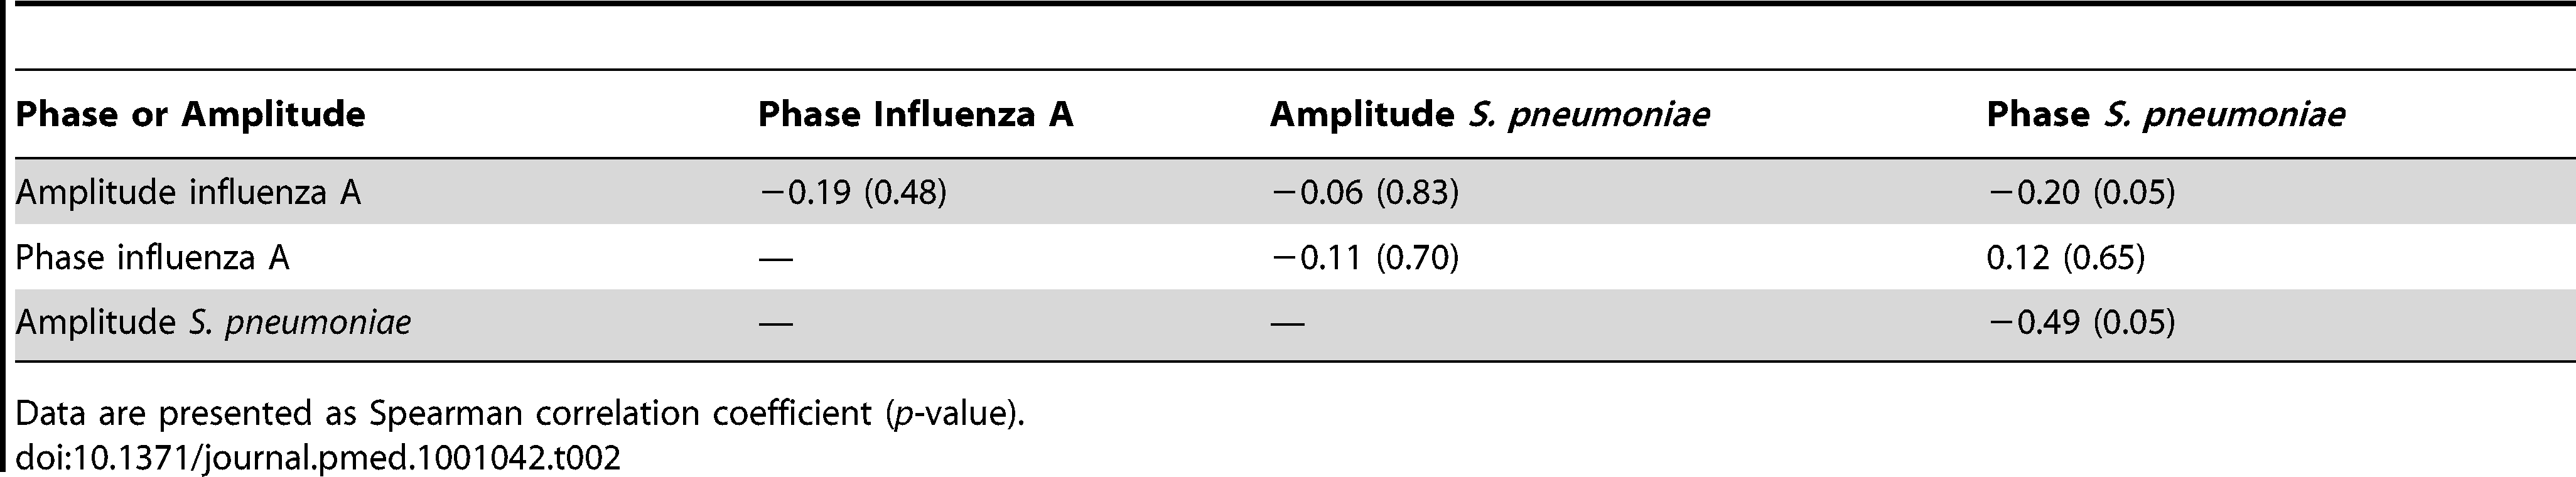 Spearman correlation coefficients for the association of phase and amplitude terms for influenza A and pneumococcal sine waves.